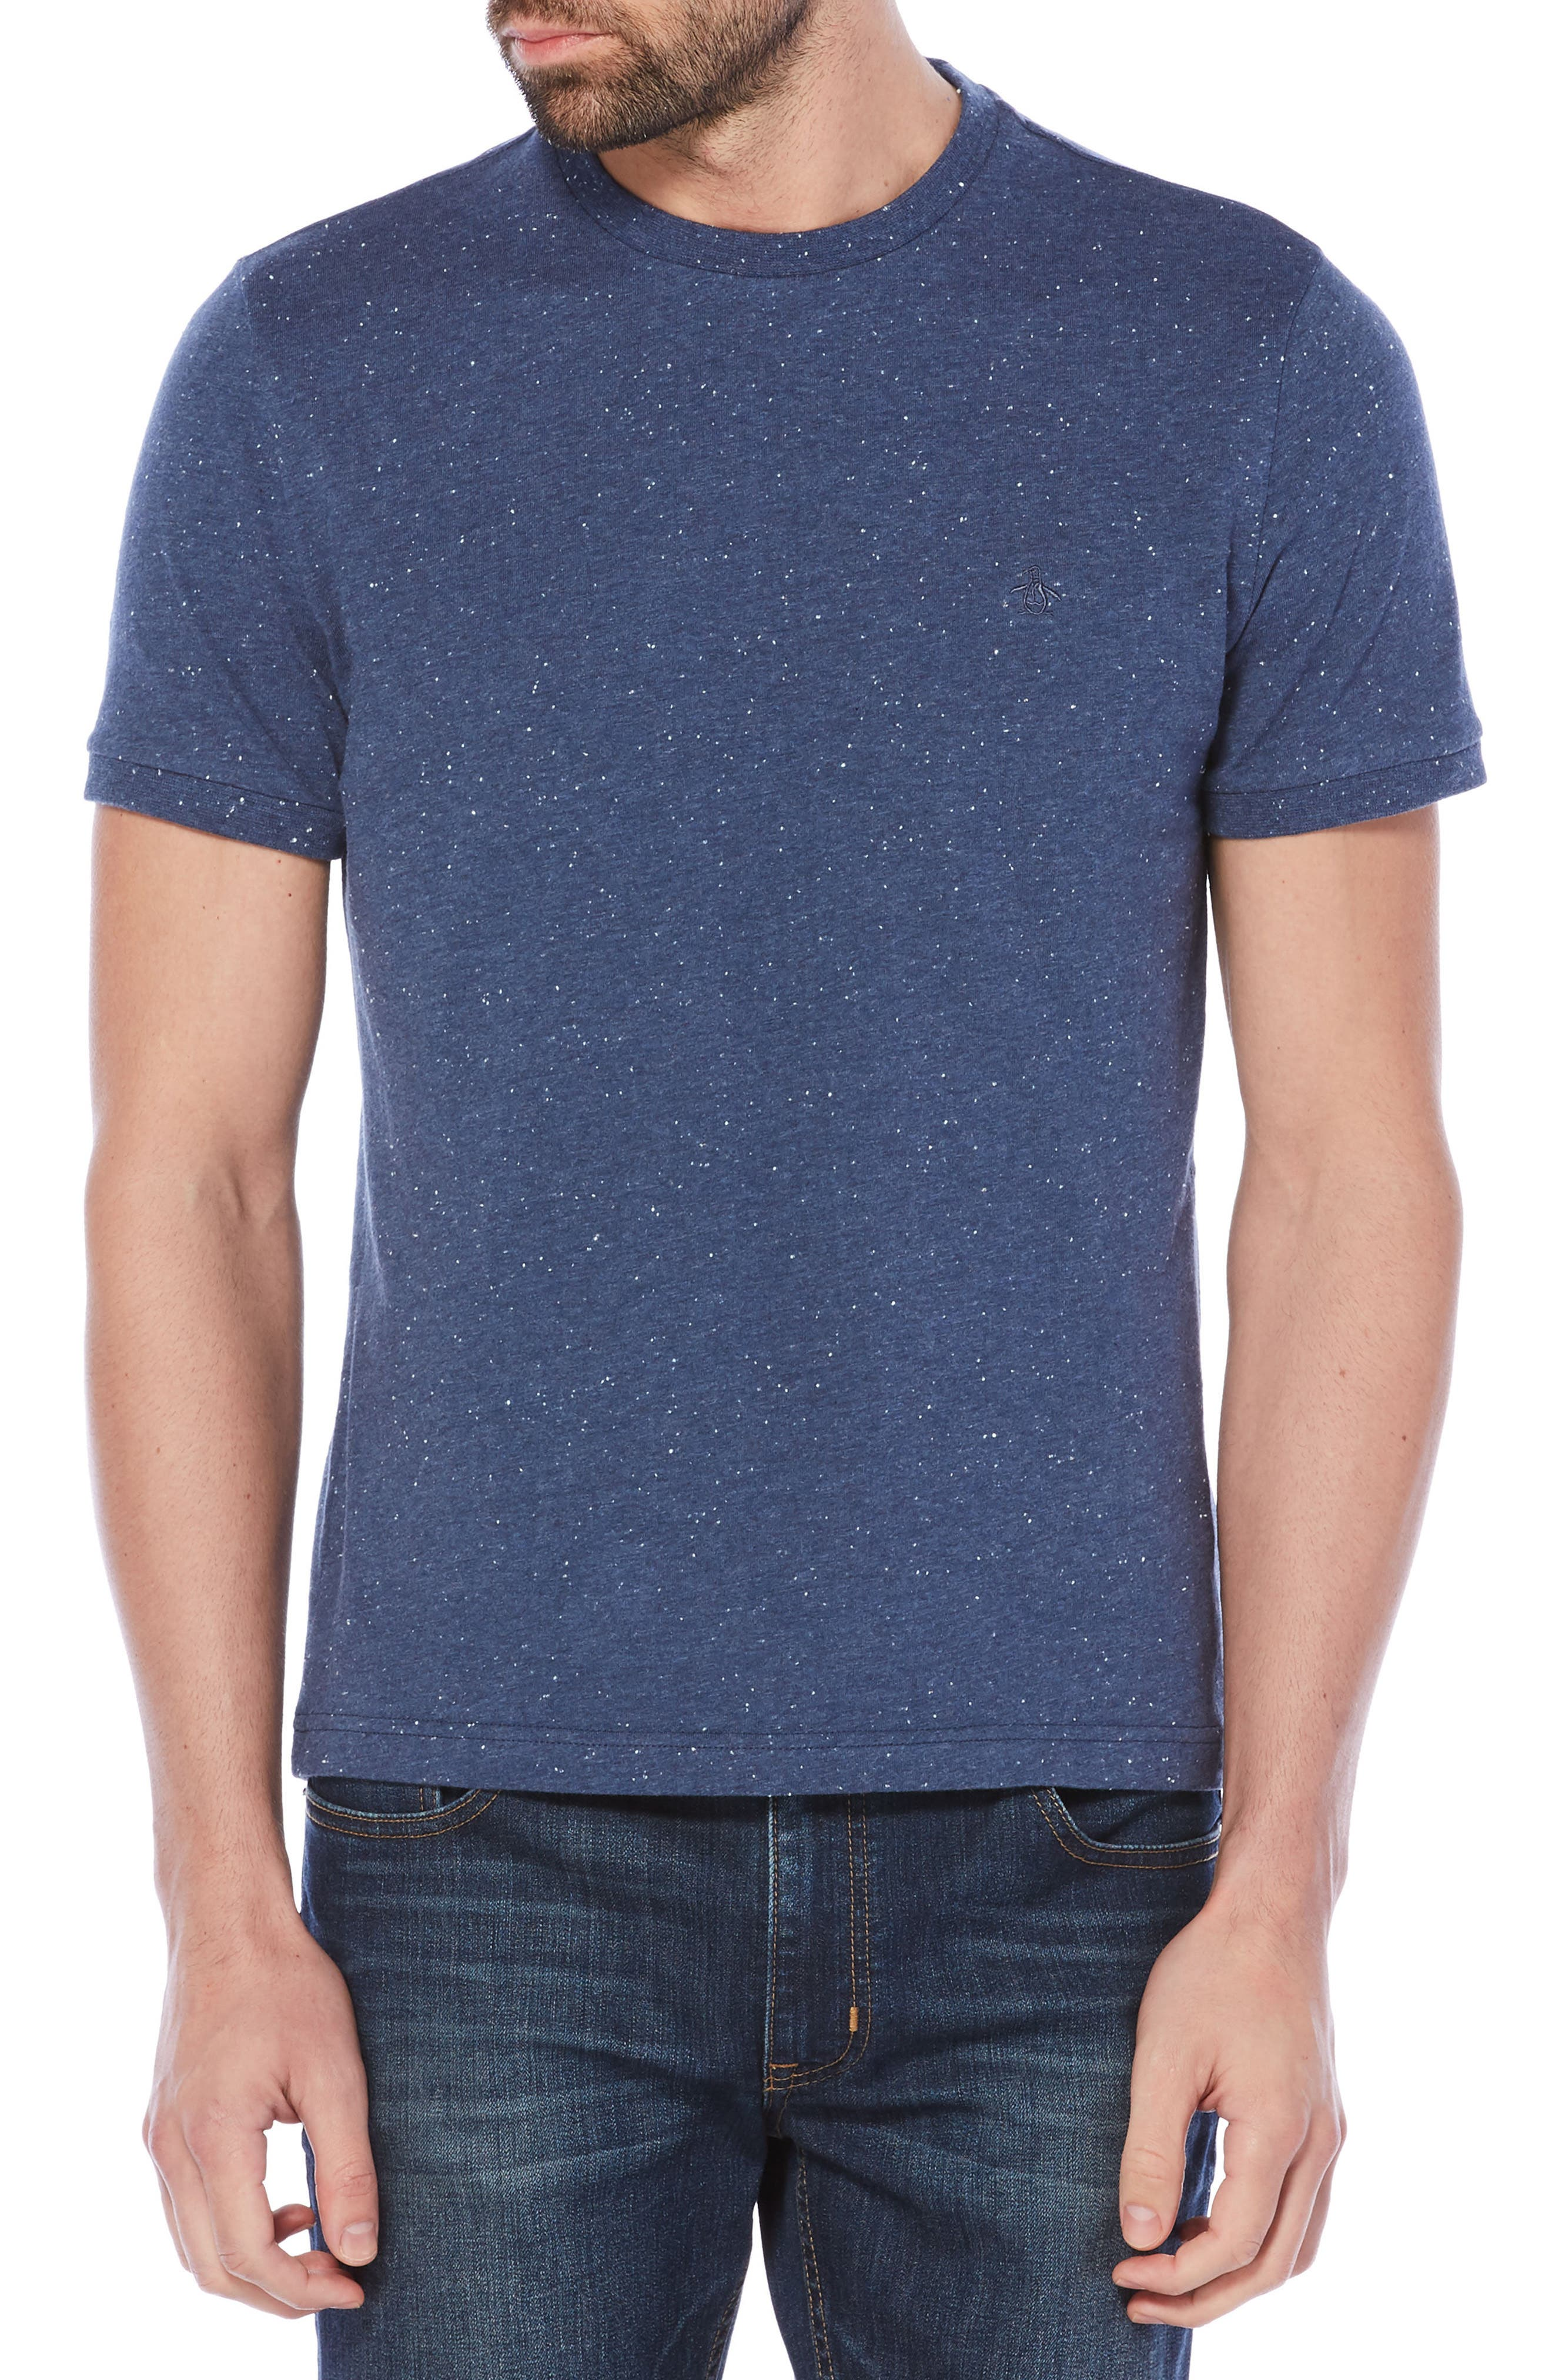 Nep Speckled T-Shirt,                             Main thumbnail 1, color,                             Vintage Indigo